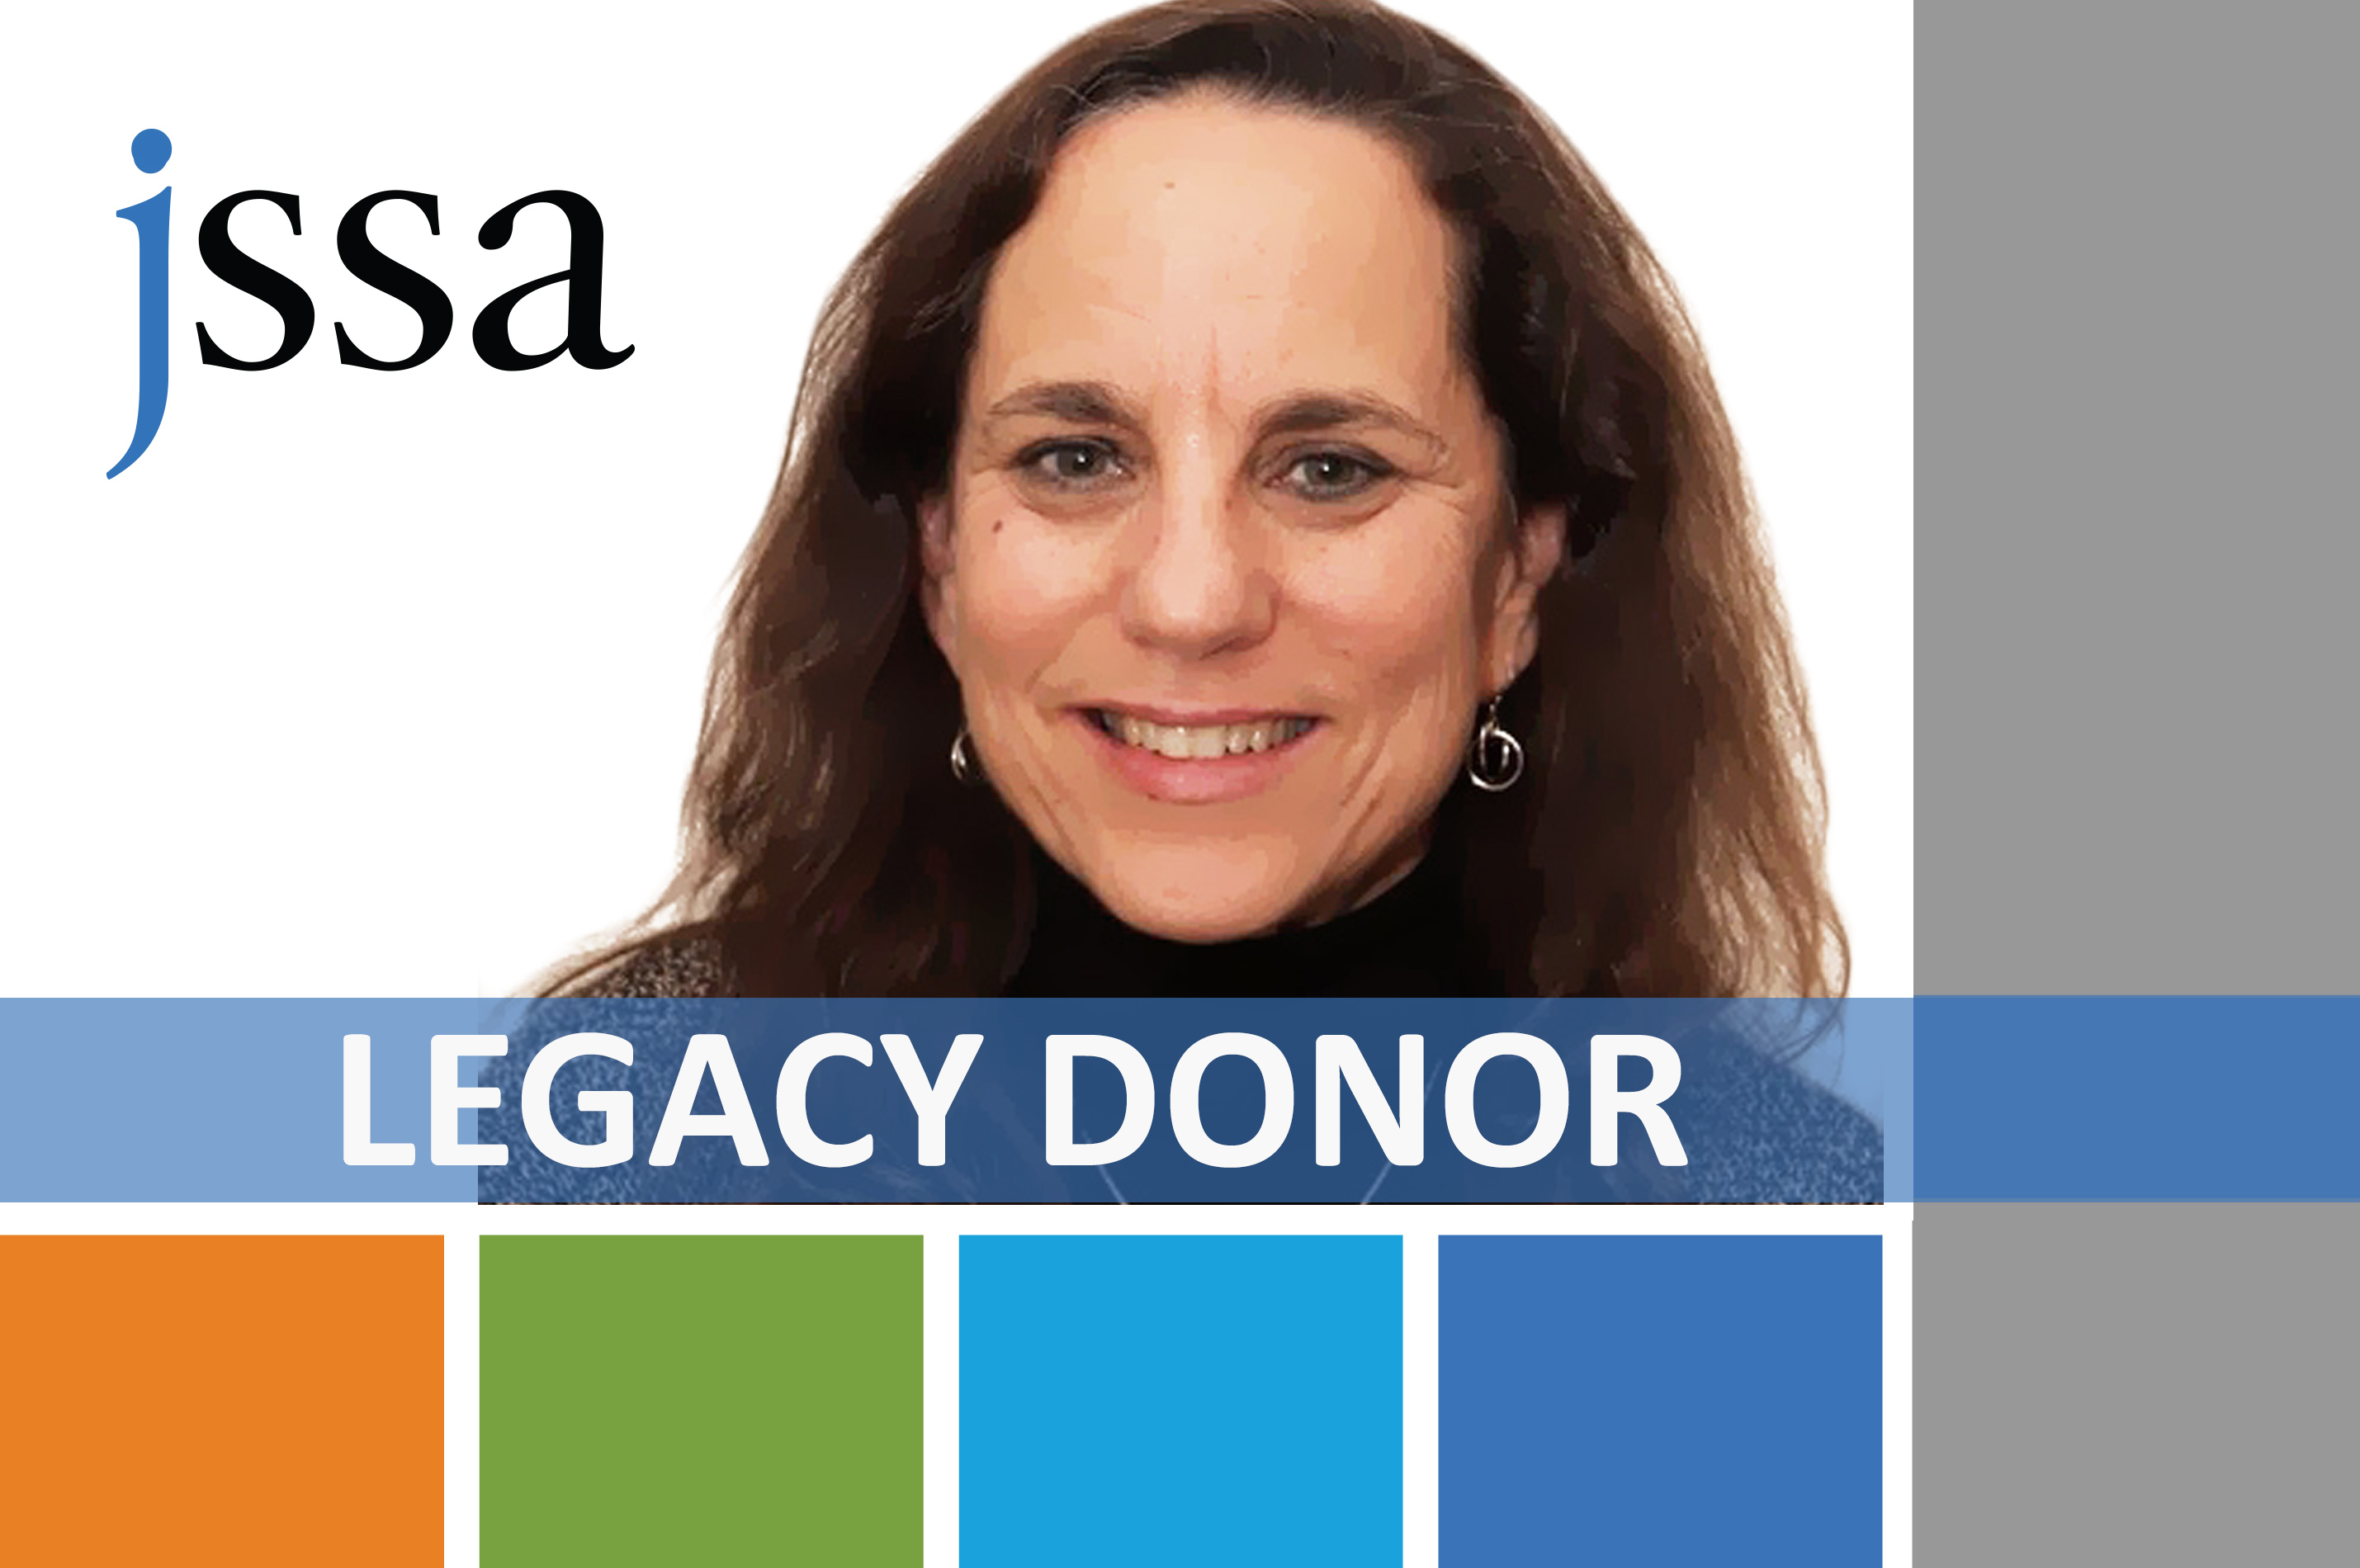 JSSA Legacy Donor Harriet Tritell